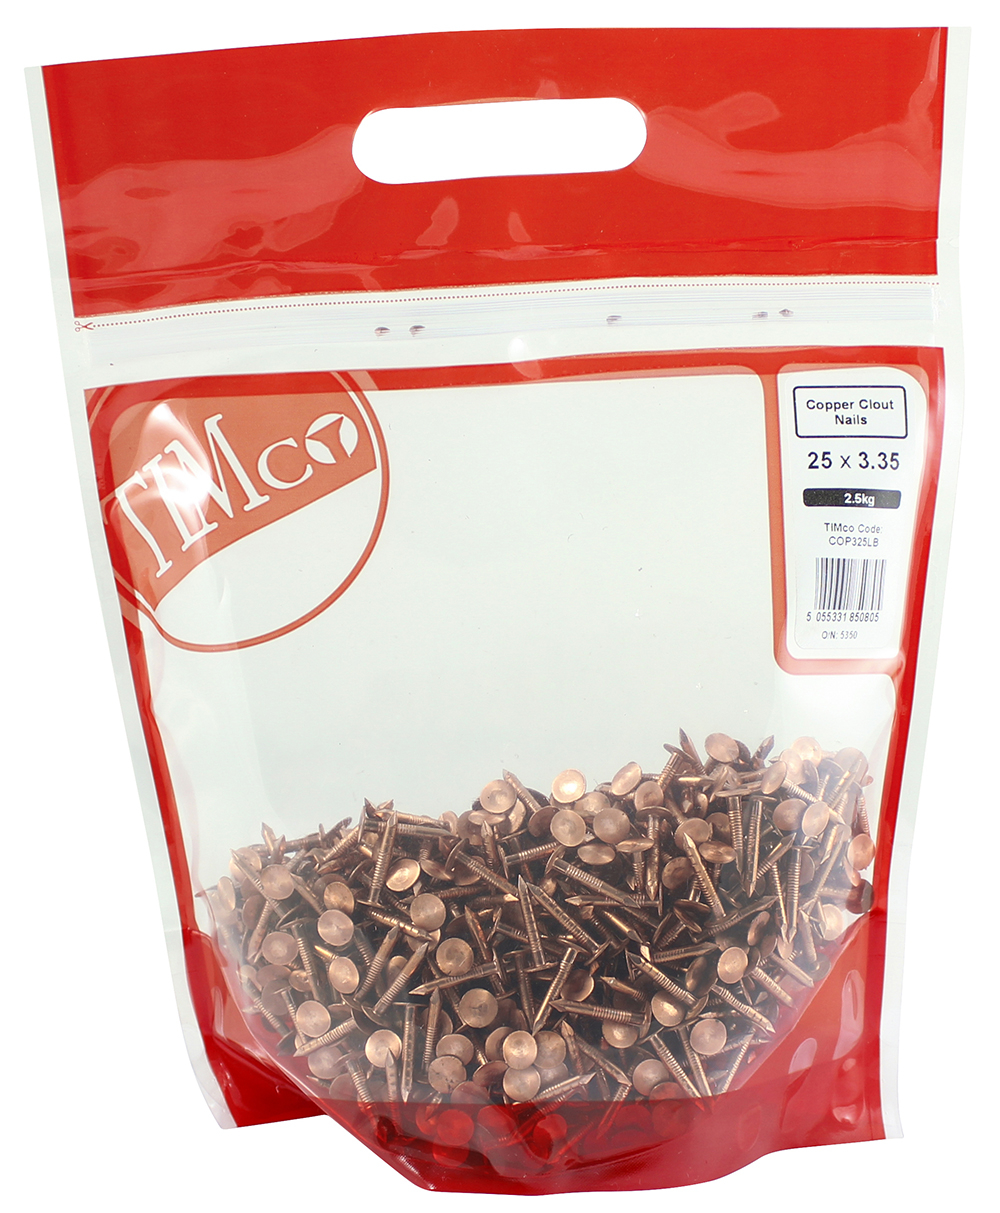 TIMco 25 x 3.35 Clout Nails - Copper 2.5 kg Bag